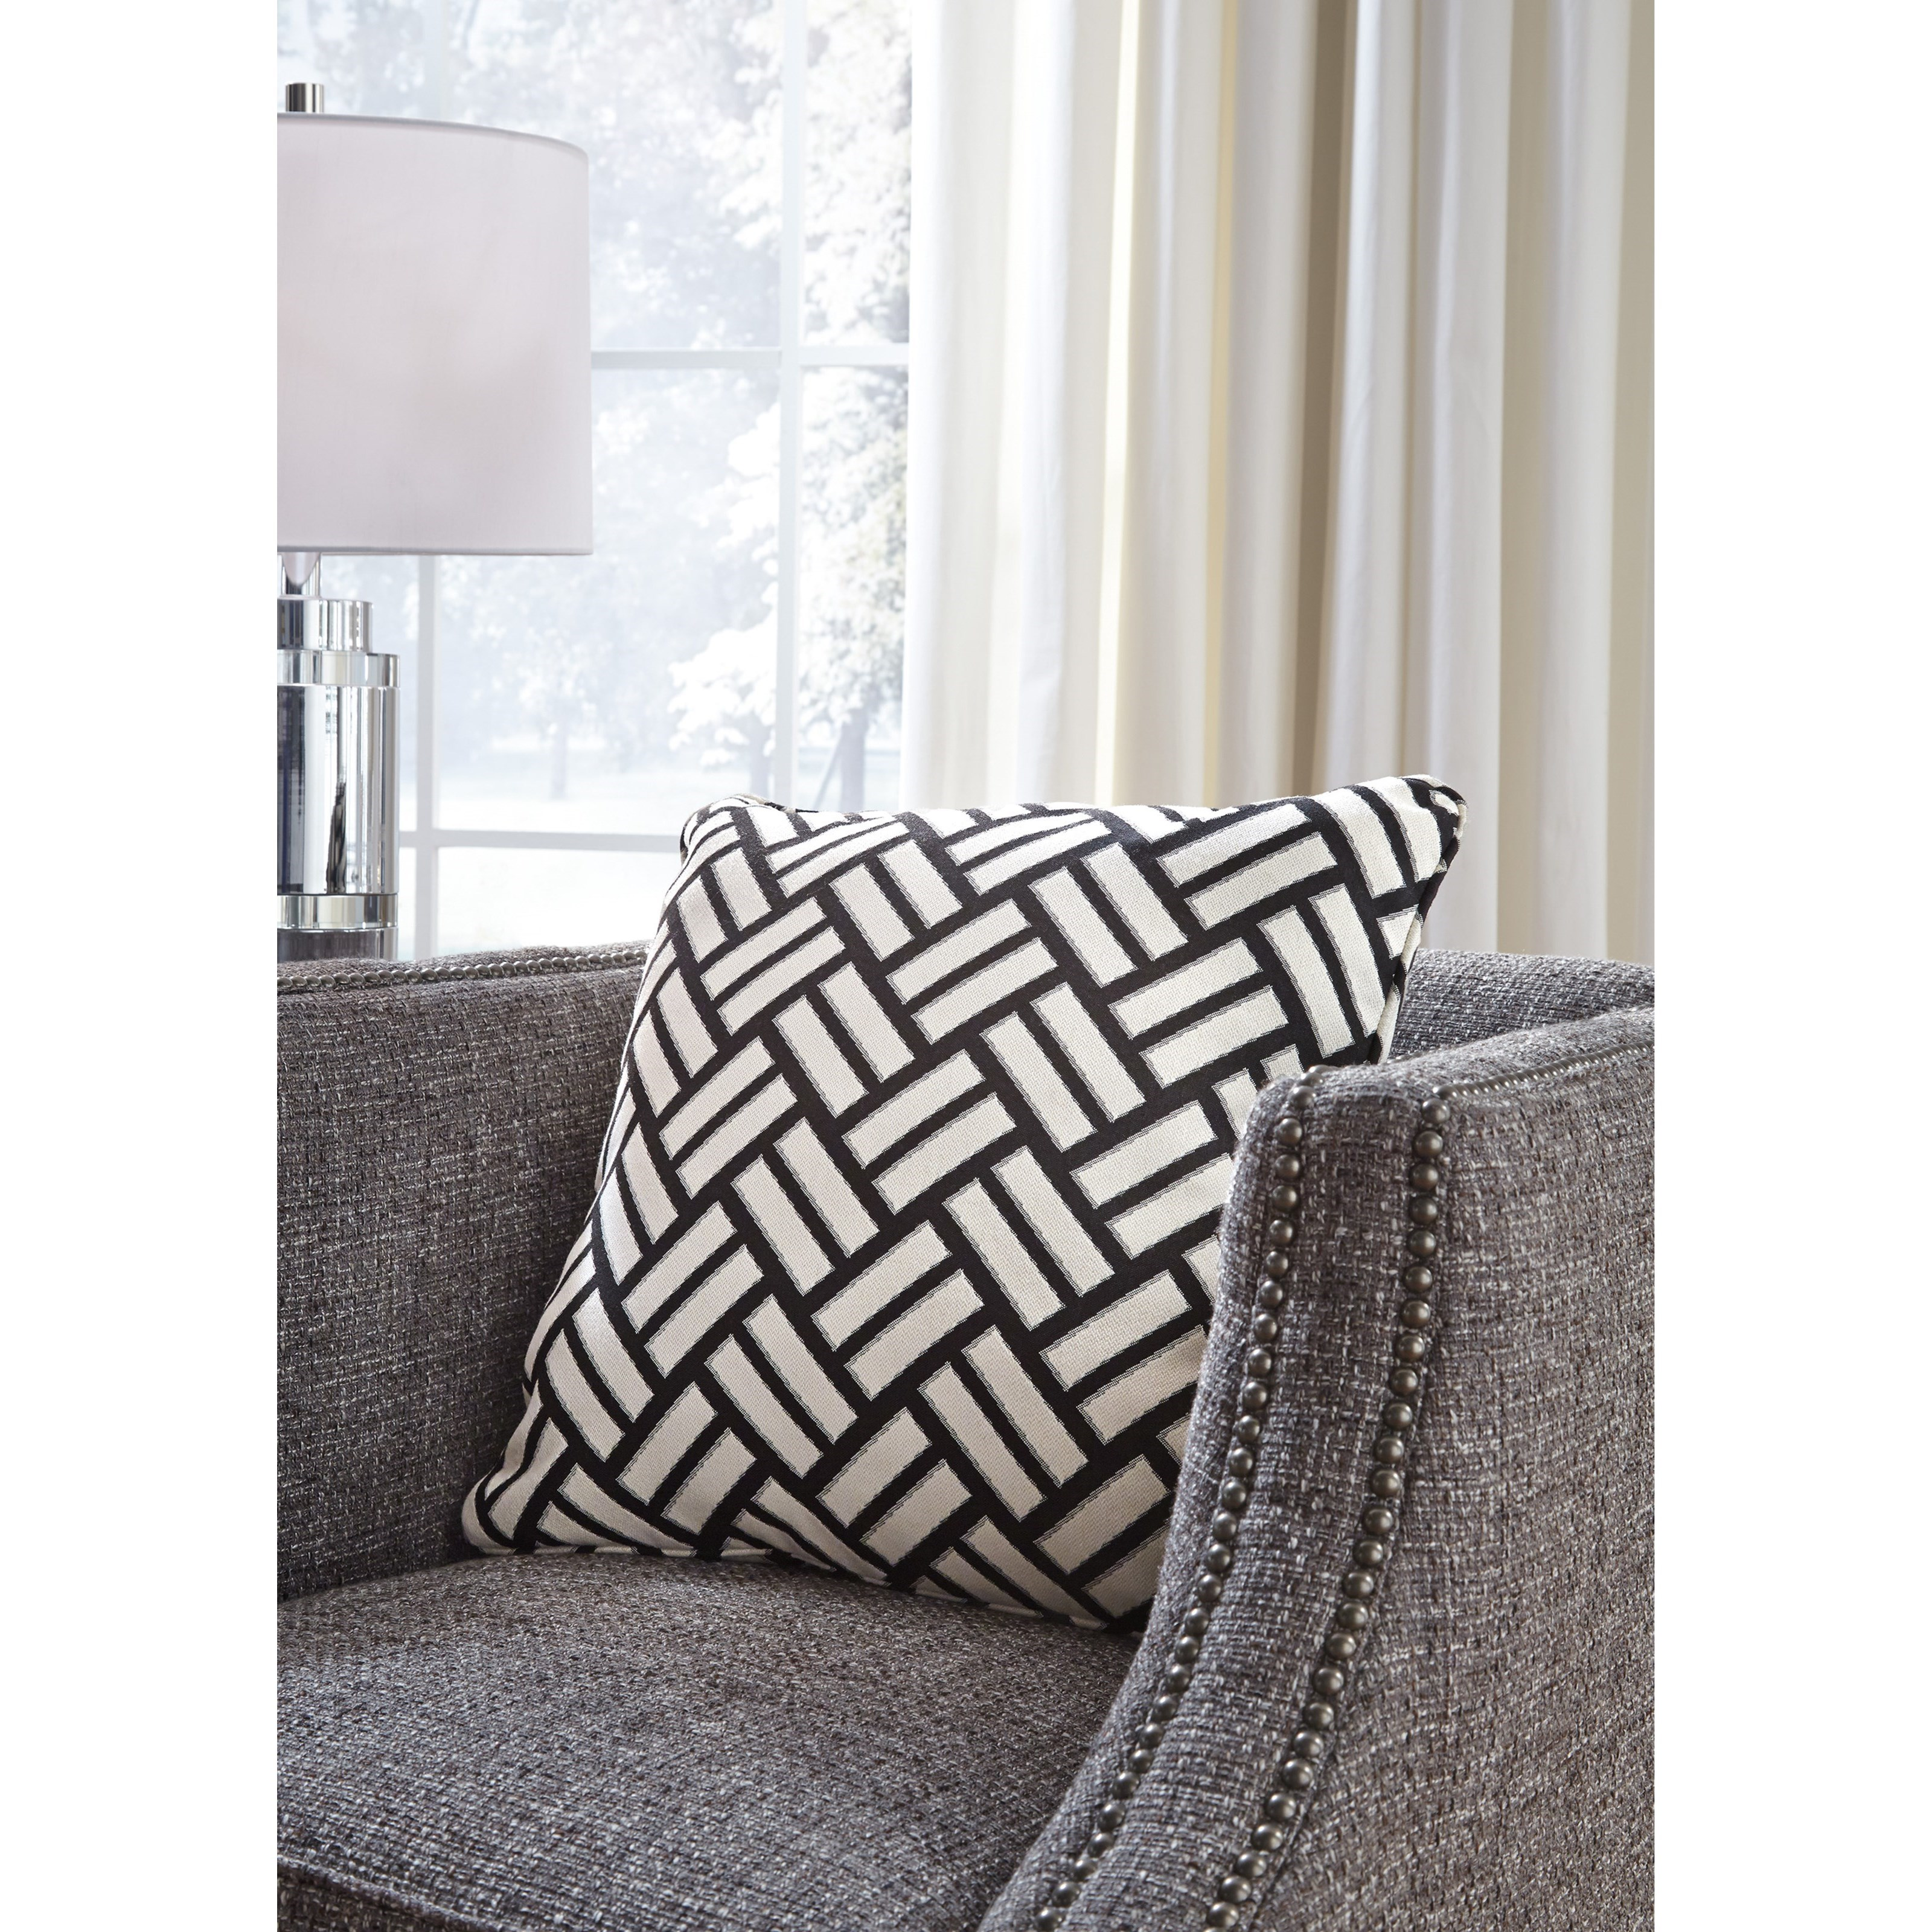 Signature Design By Ashley Pillows Ayres Black/White